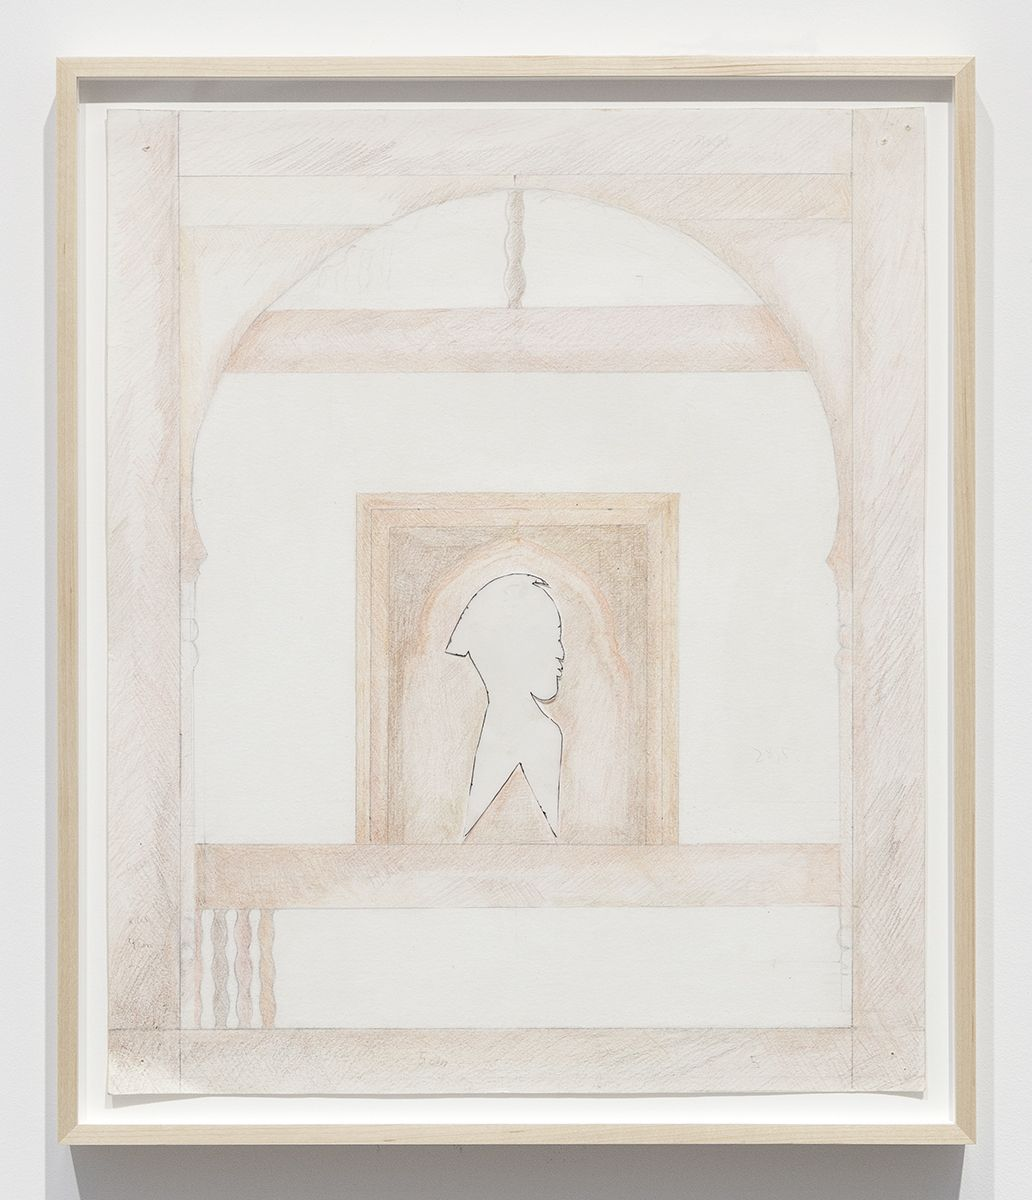 Katharina Wulff Untitled, 2014 Pencil, colored pencil, ink, transparent paper on paper Paper: 23 5/8 x 19 5/8 inches (60 x 49.8 cm) Frame: 26 x 22 x 1 1/2 inches (66 x 55.9 x 3.8 cm)